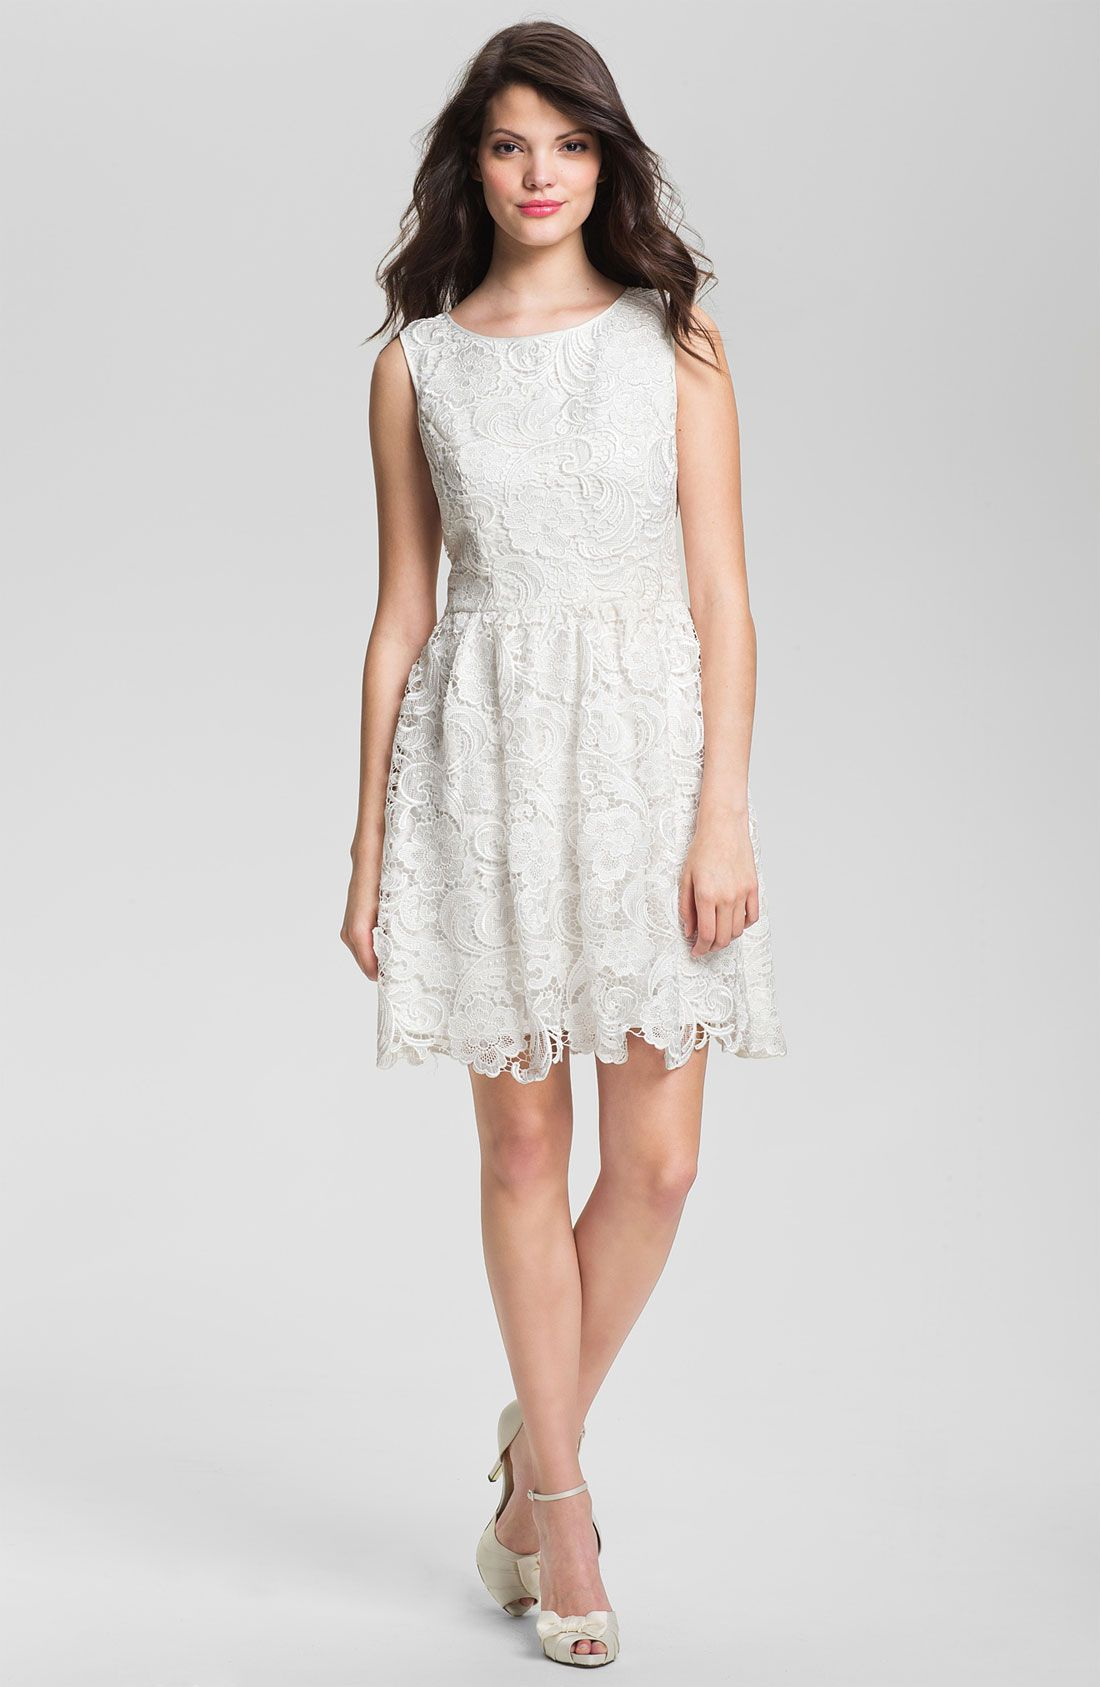 Adrianna papell lace fit u flare dress nordstrom white dresses